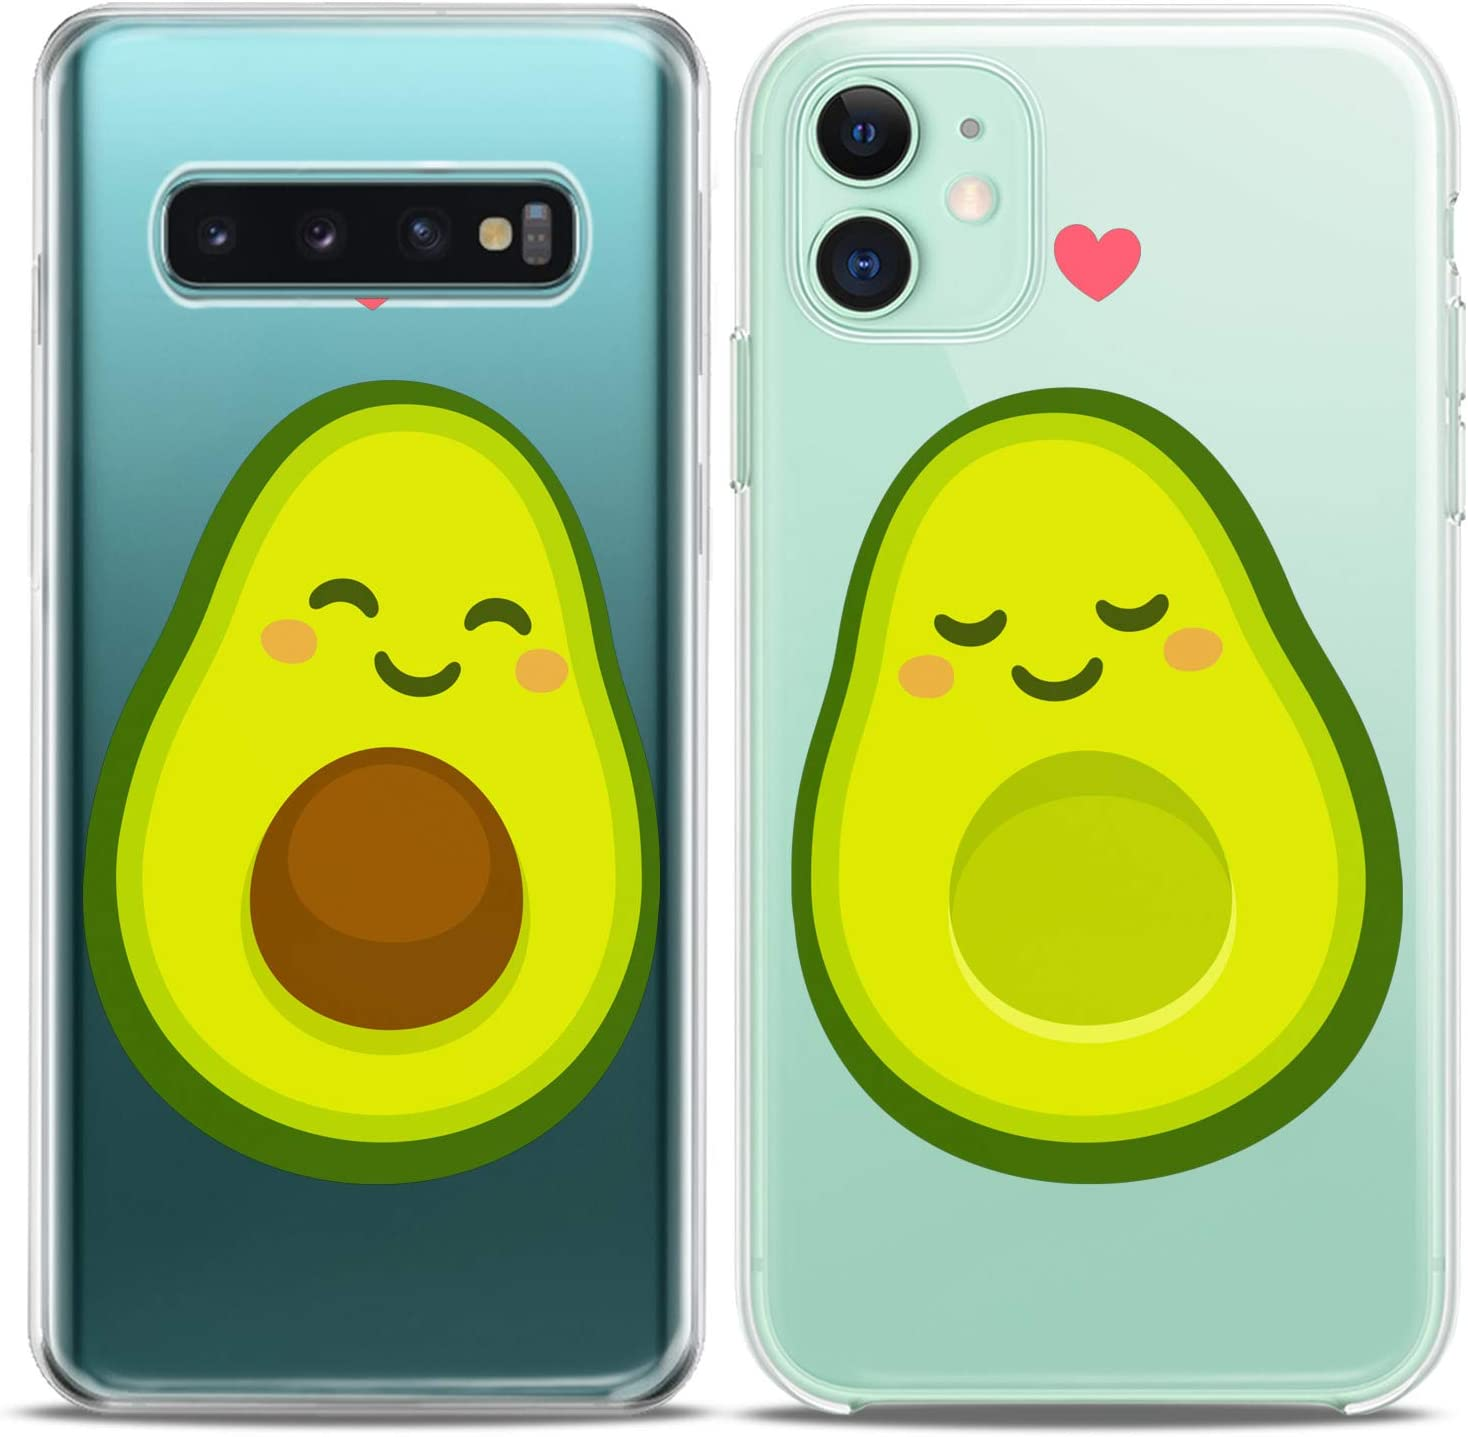 Cavka Matching Couple Cases Replacement for Samsung Galaxy S20 Note 20 5G S10e A71 A50 A11 A01 S7 S8 Avocado Kawaii Fruit Clear Silicone Pair Cover Adorable Green BFF Anniversary Girls Cute Friend